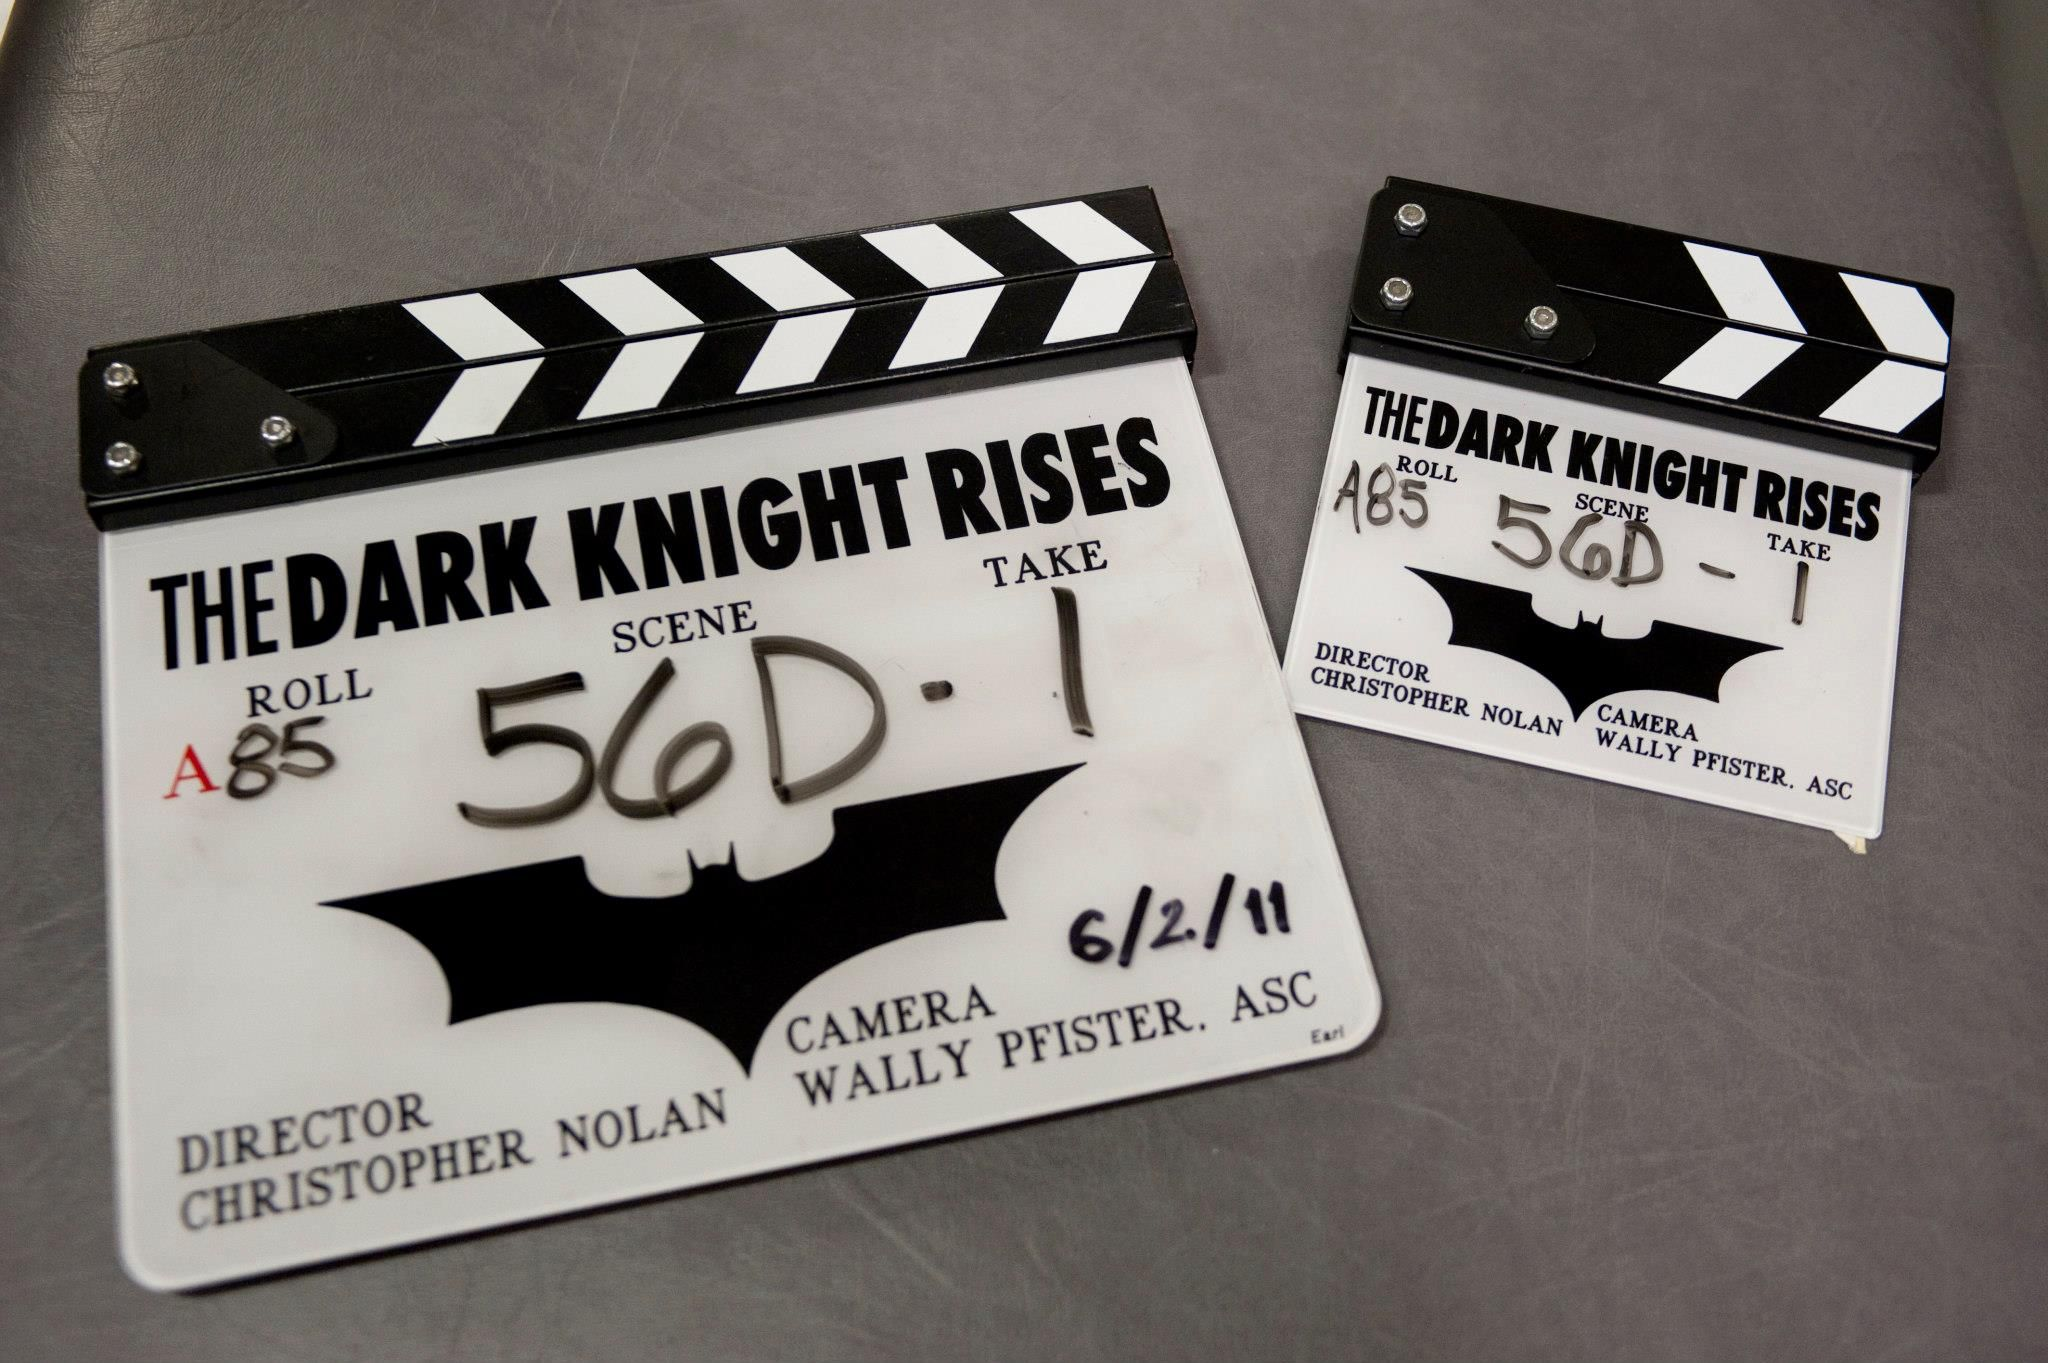 120 Photos From The Making Of The Dark Knight Trilogy With Images